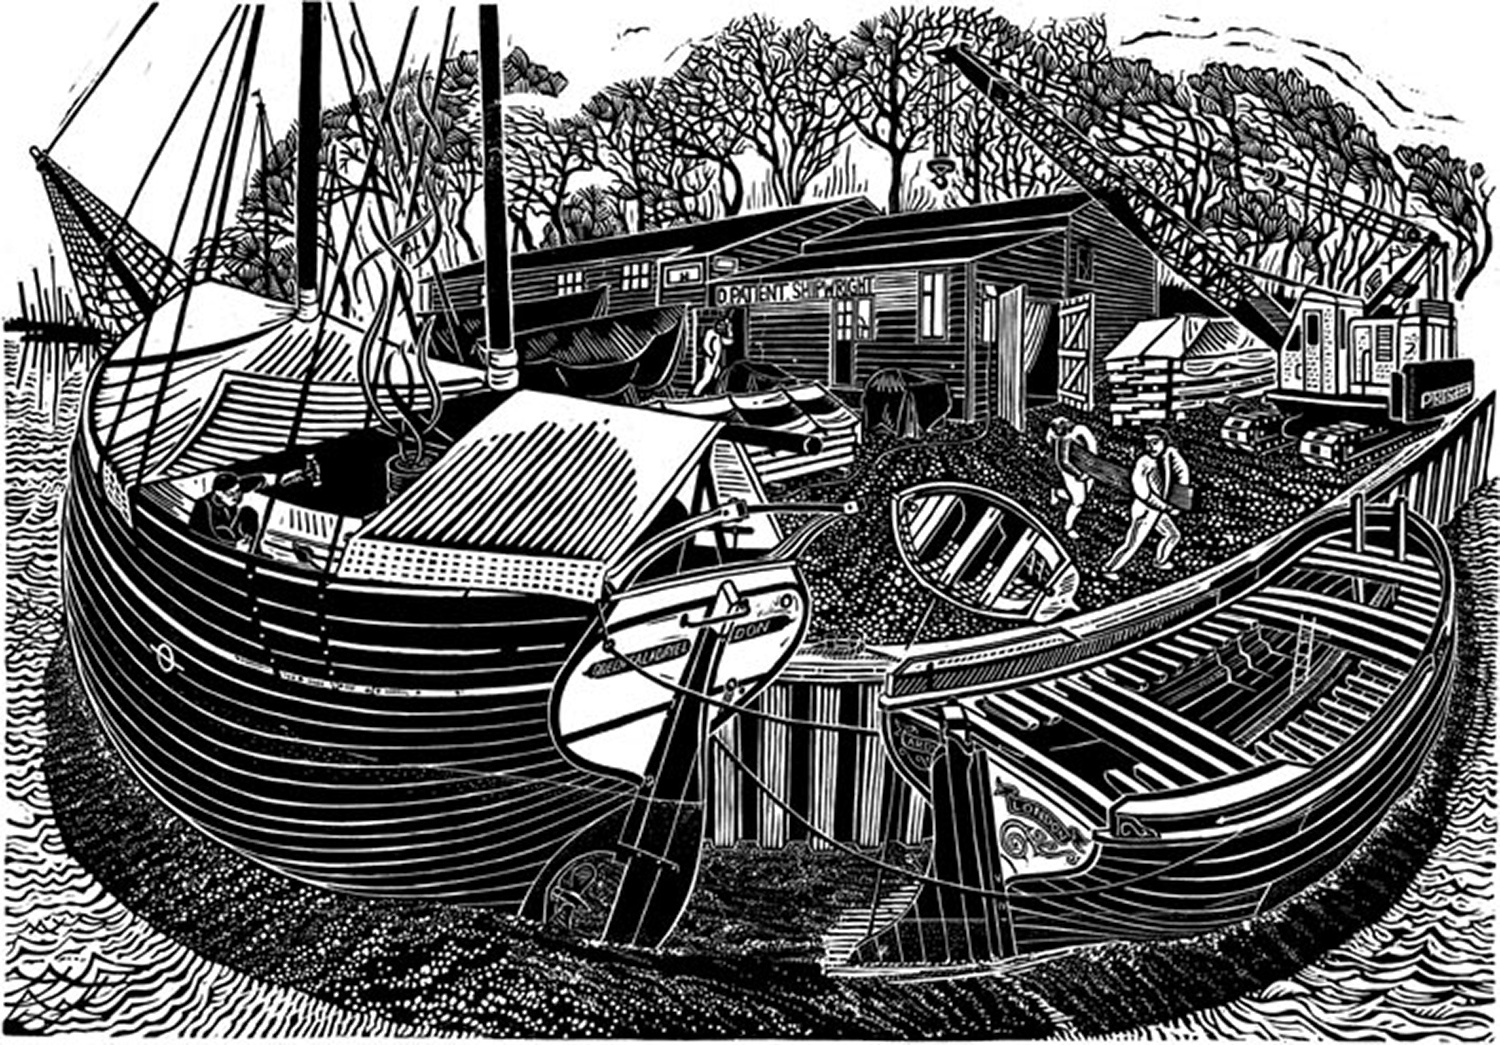 Shipwrights Yard by James Dodds